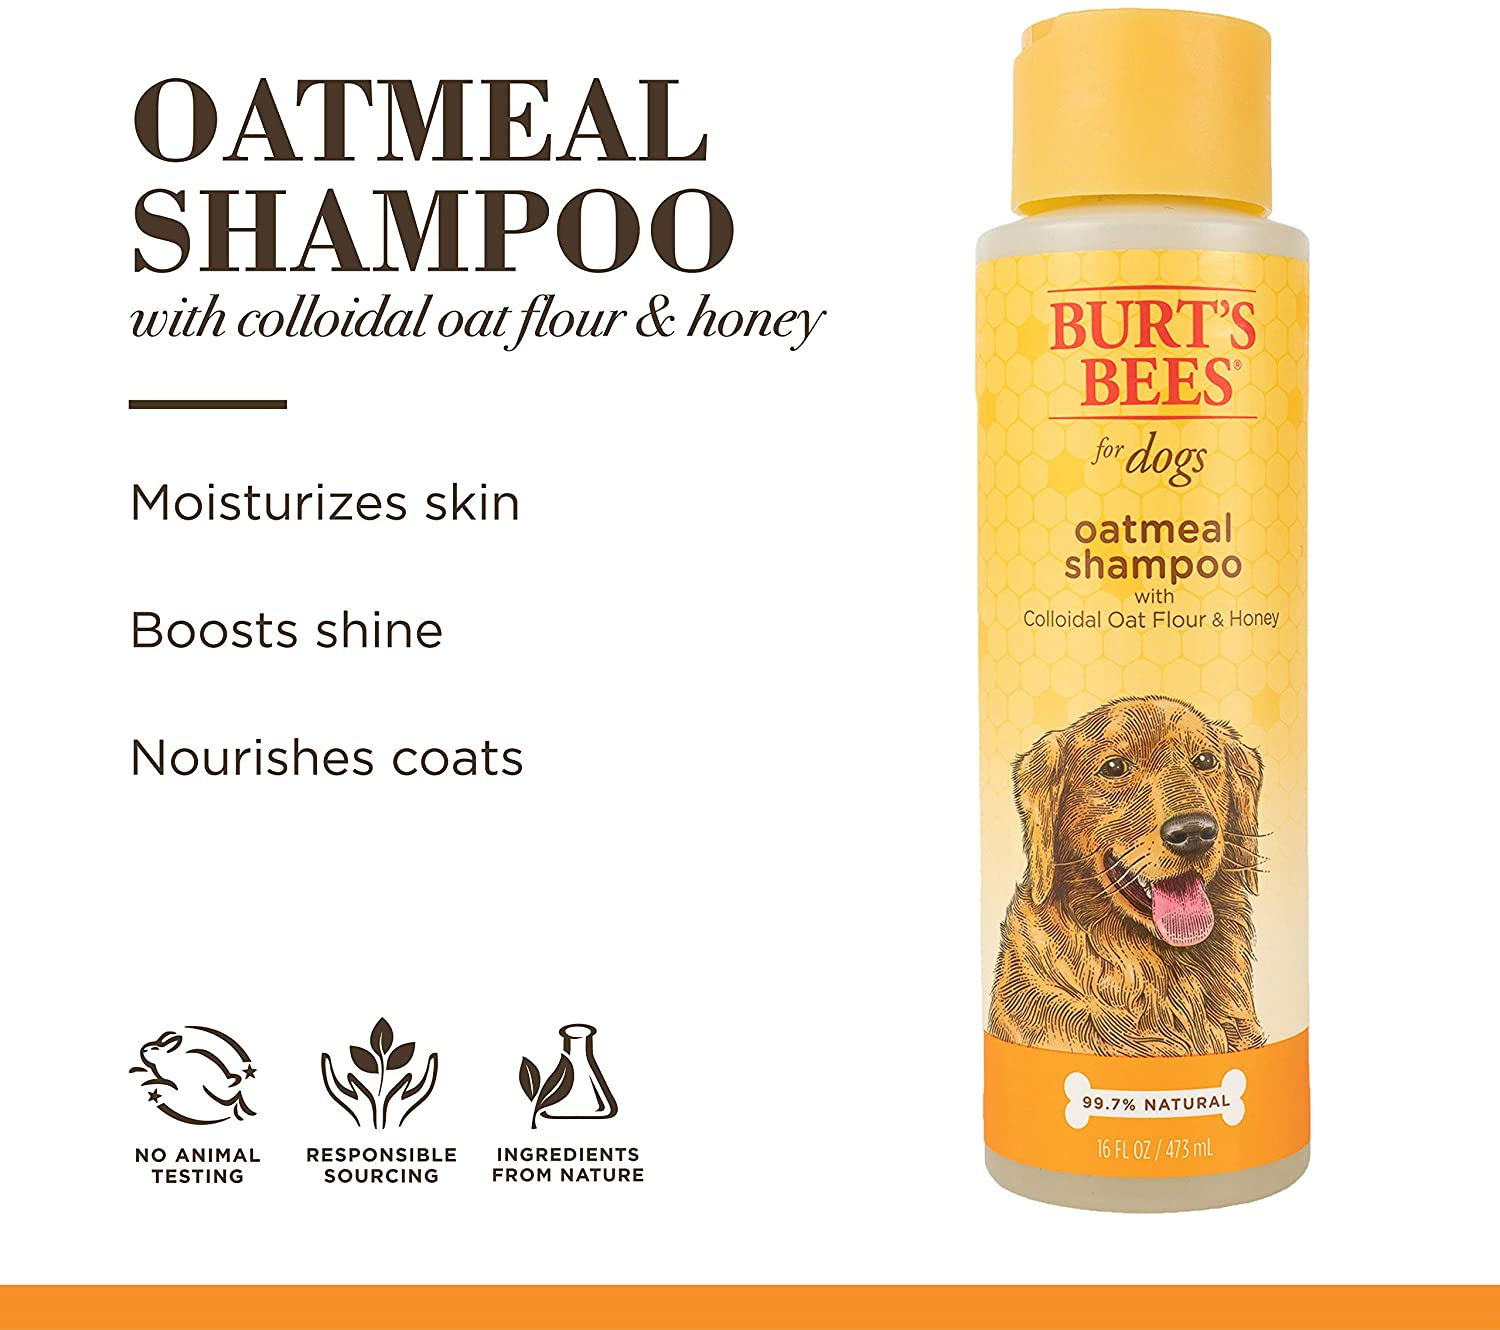 Burt's Bees for Dogs Natural Oatmeal Shampoo for Dogs, Colloidal Oat Flour & Honey.